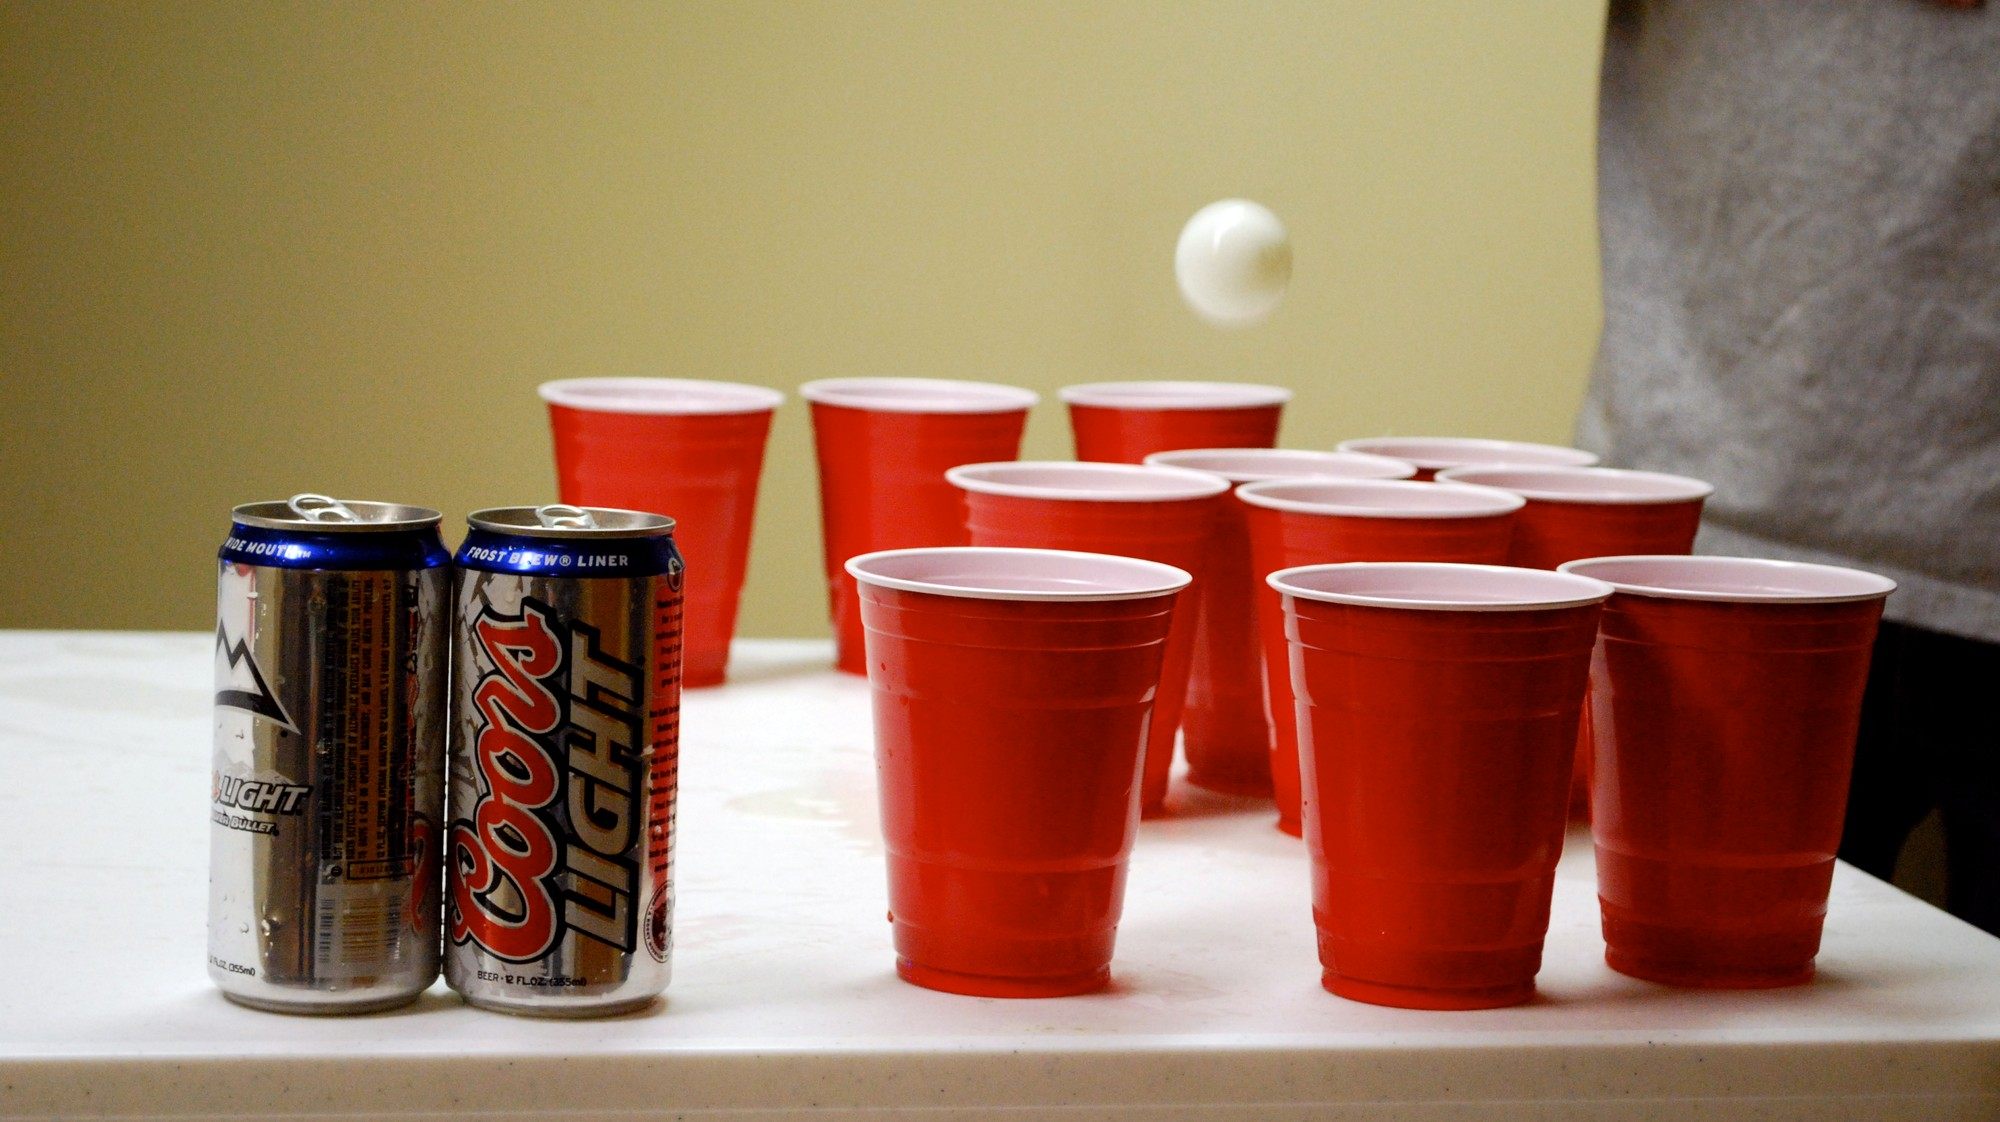 Drinking Games, Ranked from Least Terrible to Truly Terrible